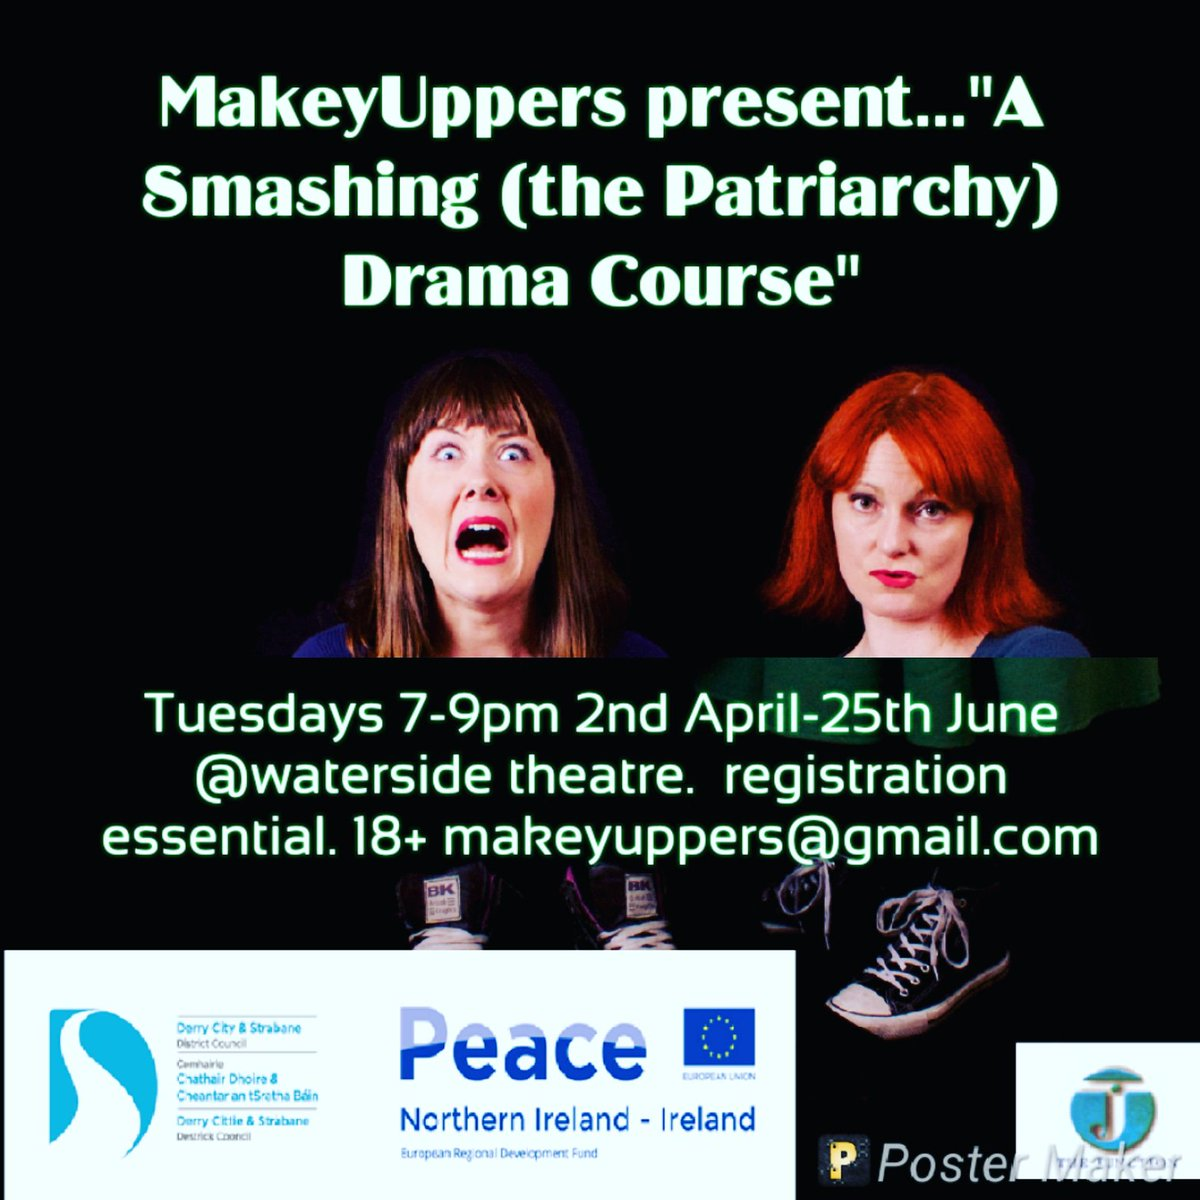 CLOSING DATE for Patriarchy drama course brought forward to Friday 22nd March due to large interest. Expression of interest form essential but does not guarantee a place. xx @Foylewomensinfo  @watersidetheatr @HolywellT  https://www.surveymonkey.co.uk/r/SQT5XTD